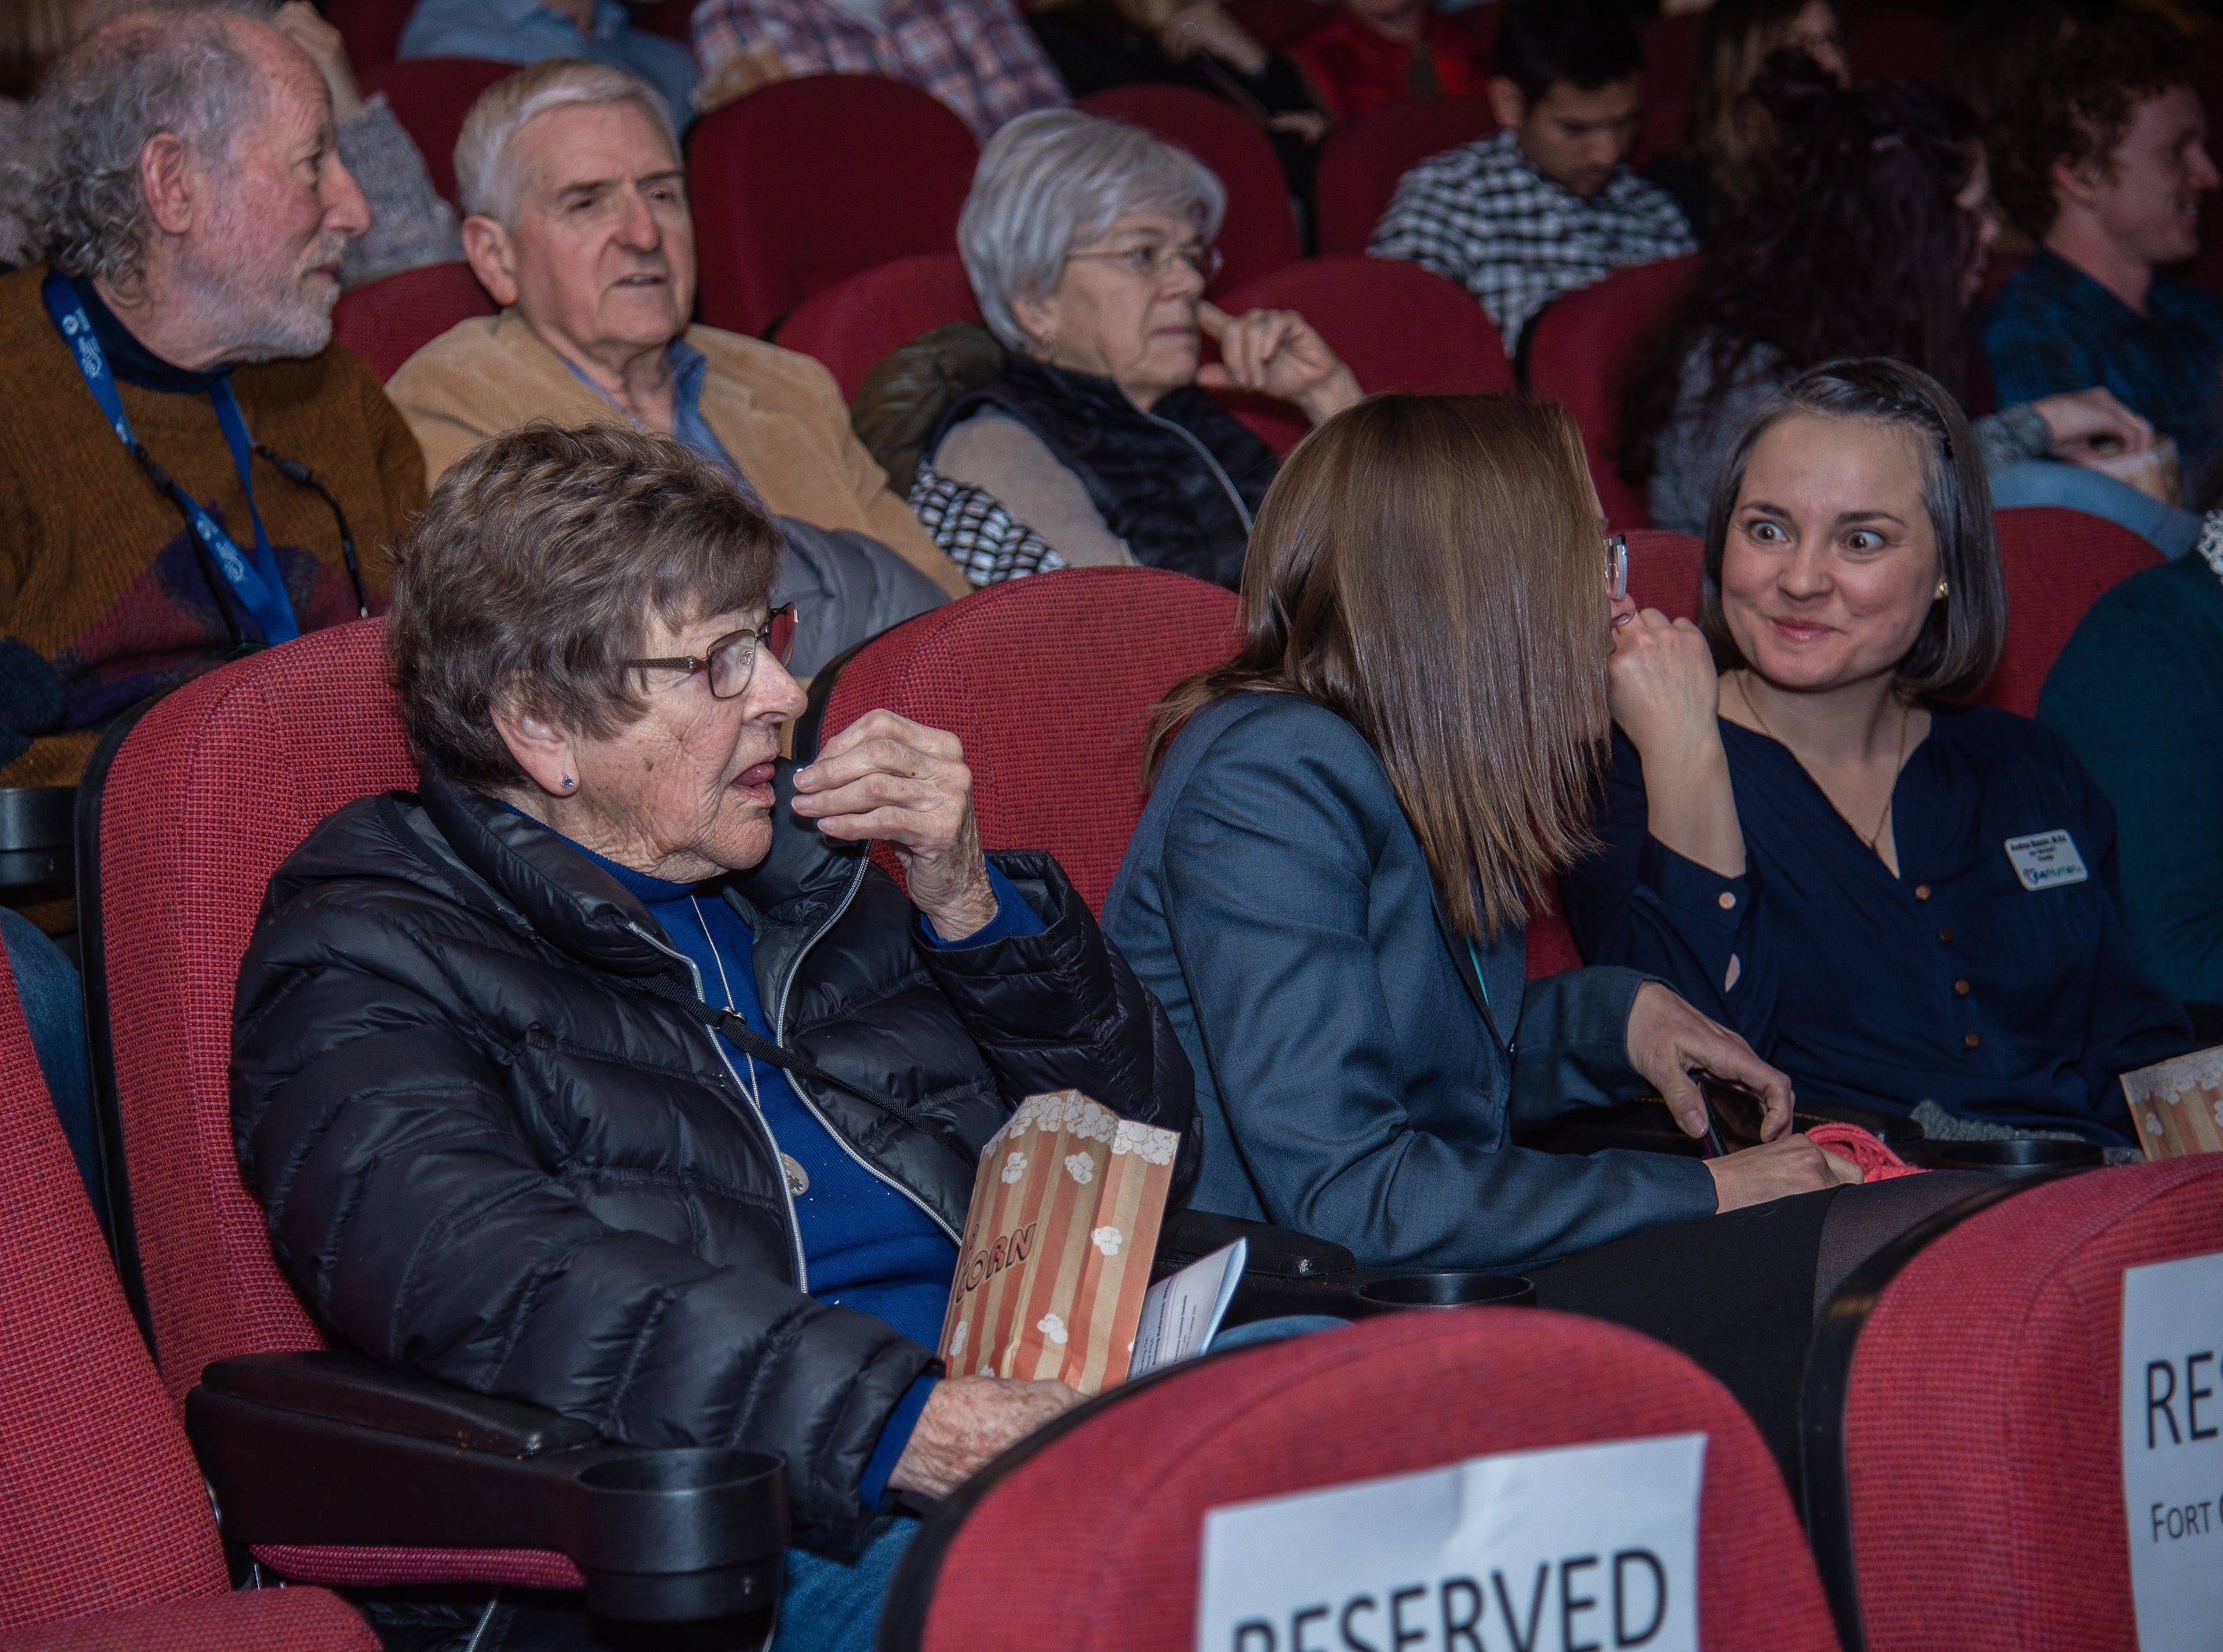 Audience members enjoy complimentary popcorn before the annual State of the City Address on Tuesday, January 29, 2019, at the Lyric Cinema in Fort Collins, Colo.bb